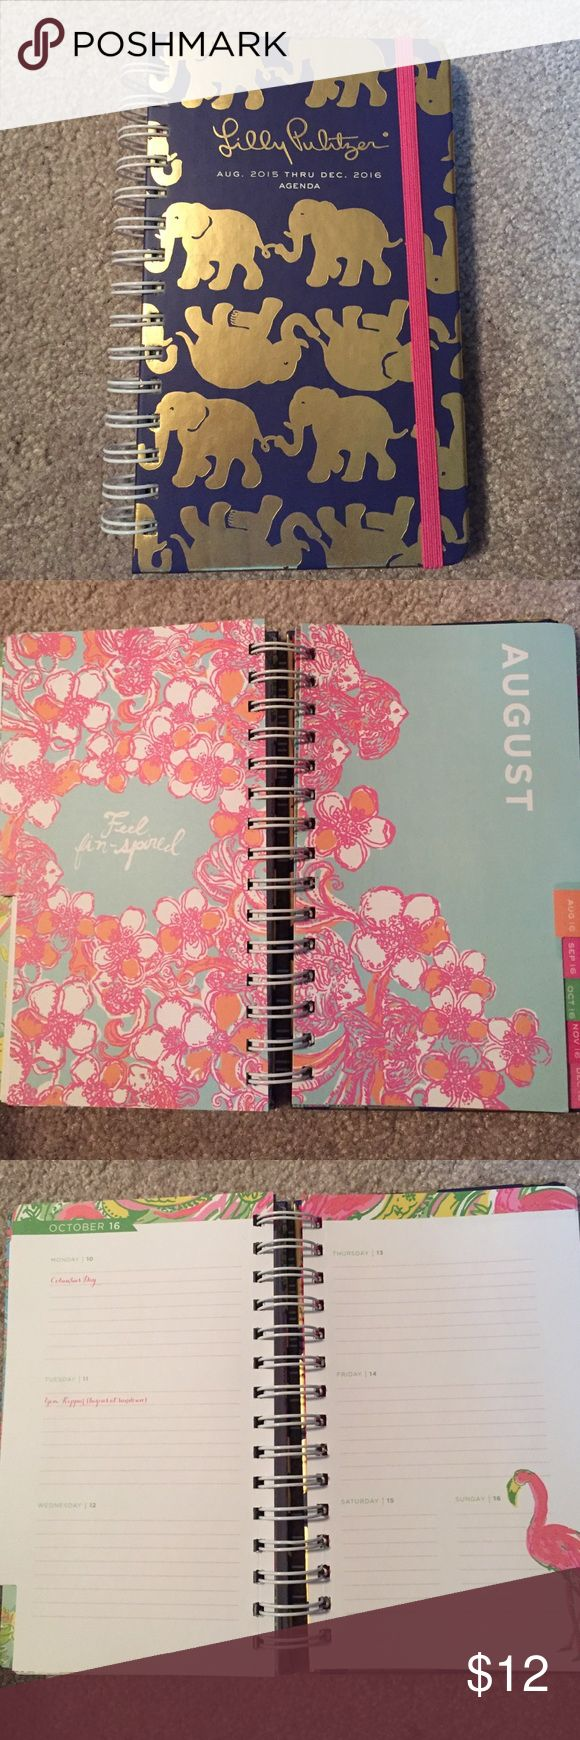 New 2016 Tusk in Sun Lily Pulitzer Agenda Only used for a few days in August 2015! Useable through December 2016! Medium size- Perfect condition, no wrinkling, stickers missing etc. Lilly Pulitzer Accessories